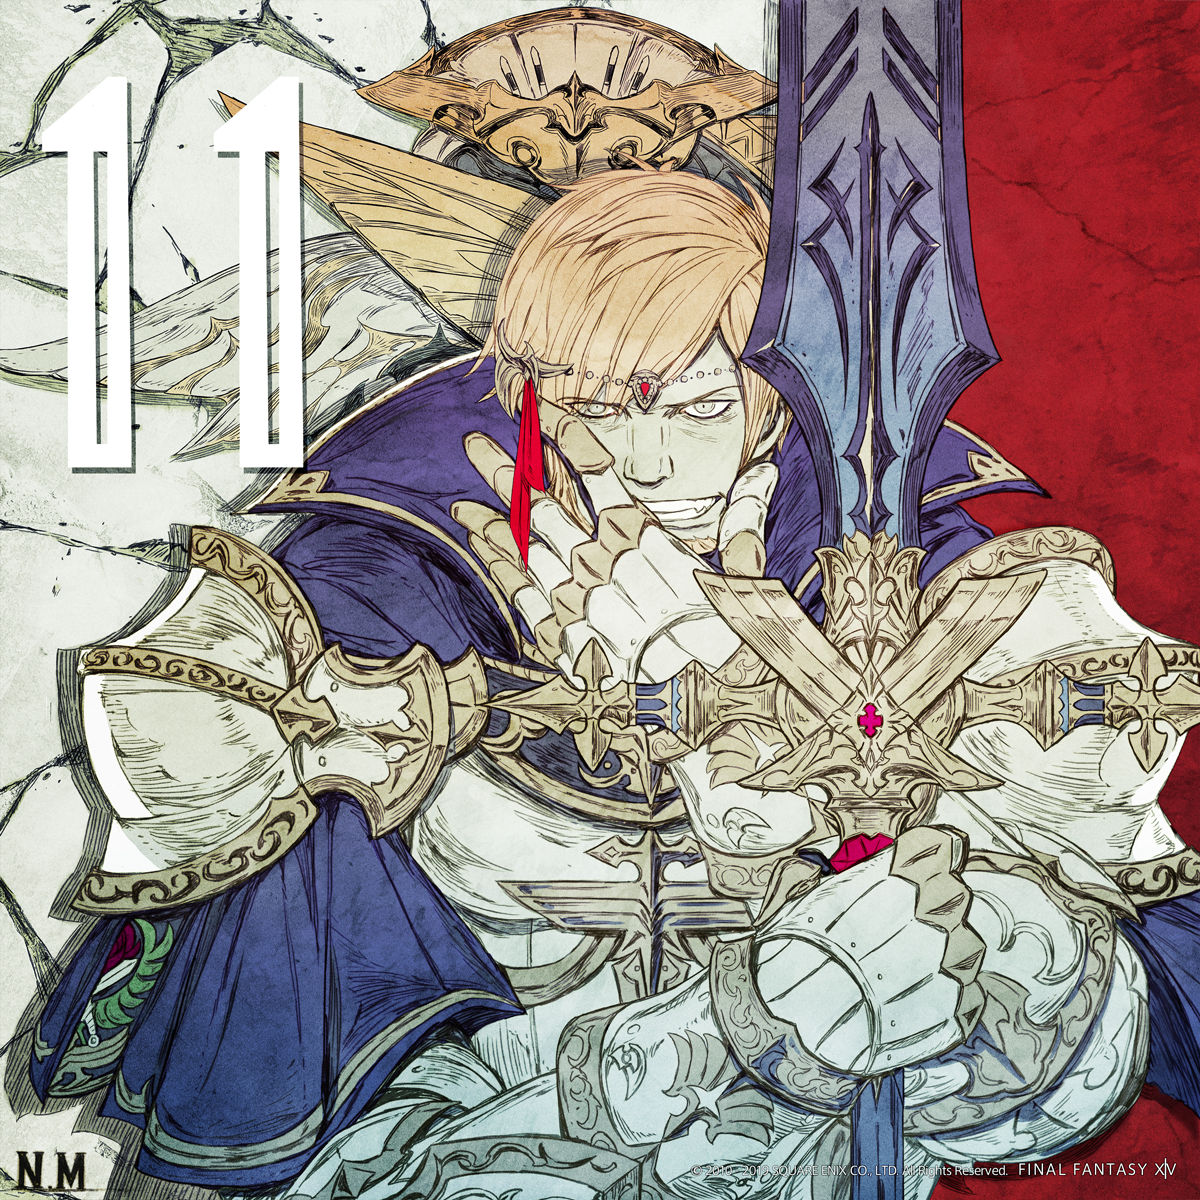 FFXIV] NO UN-TAGGED SPOILERS OR DATAMINED STUFF  - Page 23